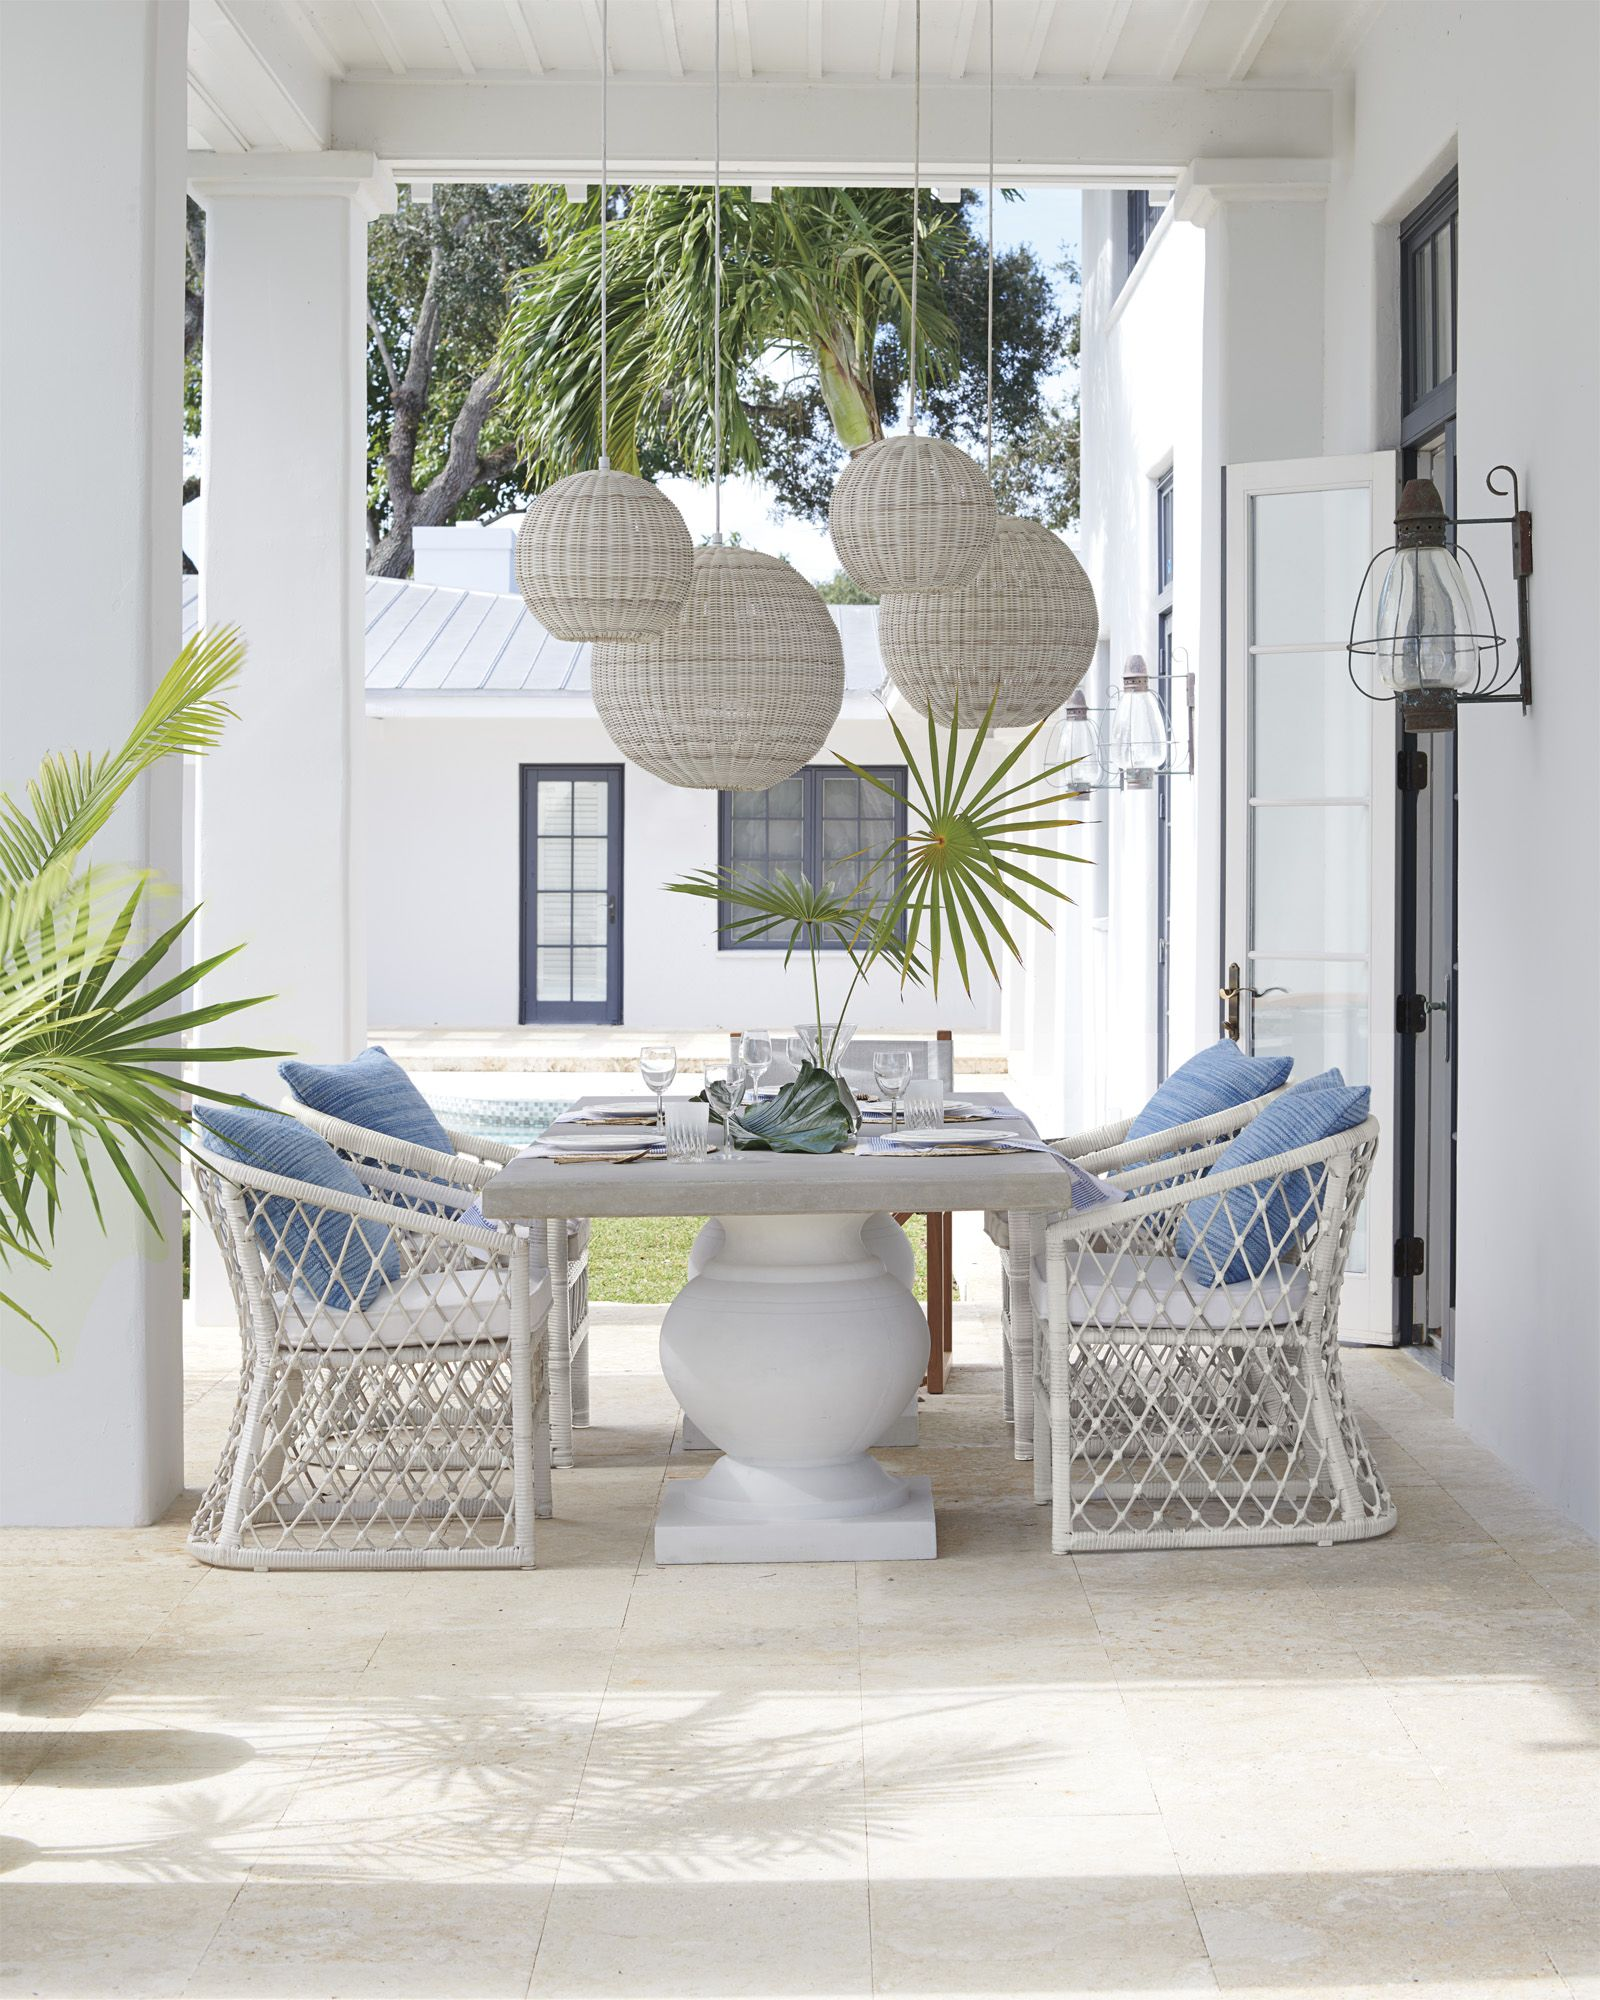 Terrace Dining Table Outdoor Space Design Outdoor Dining Chairs